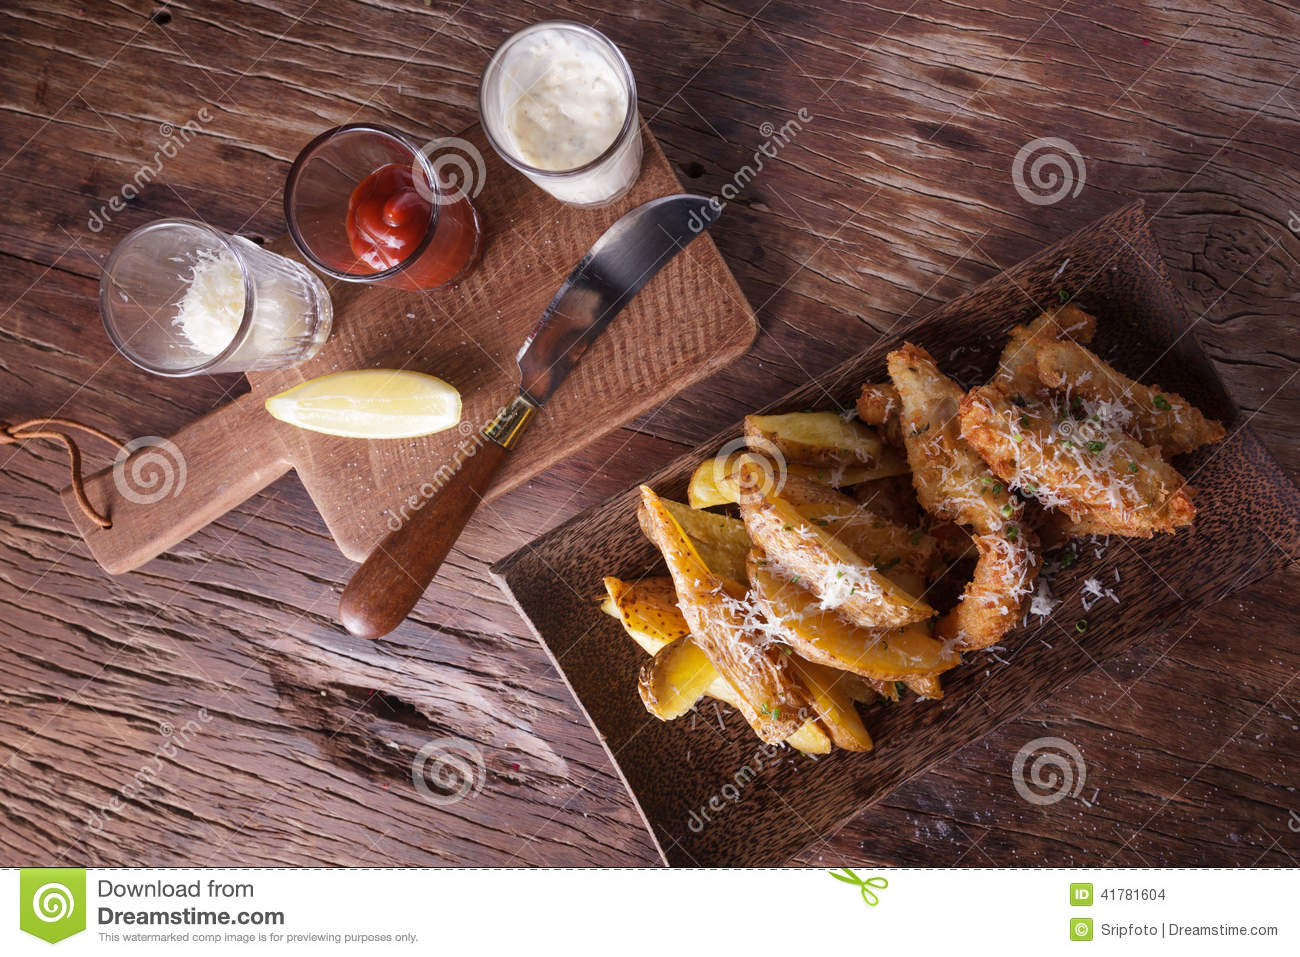 Fish And Chips With Tartar Sauce Stock Photo - Image: 41781604